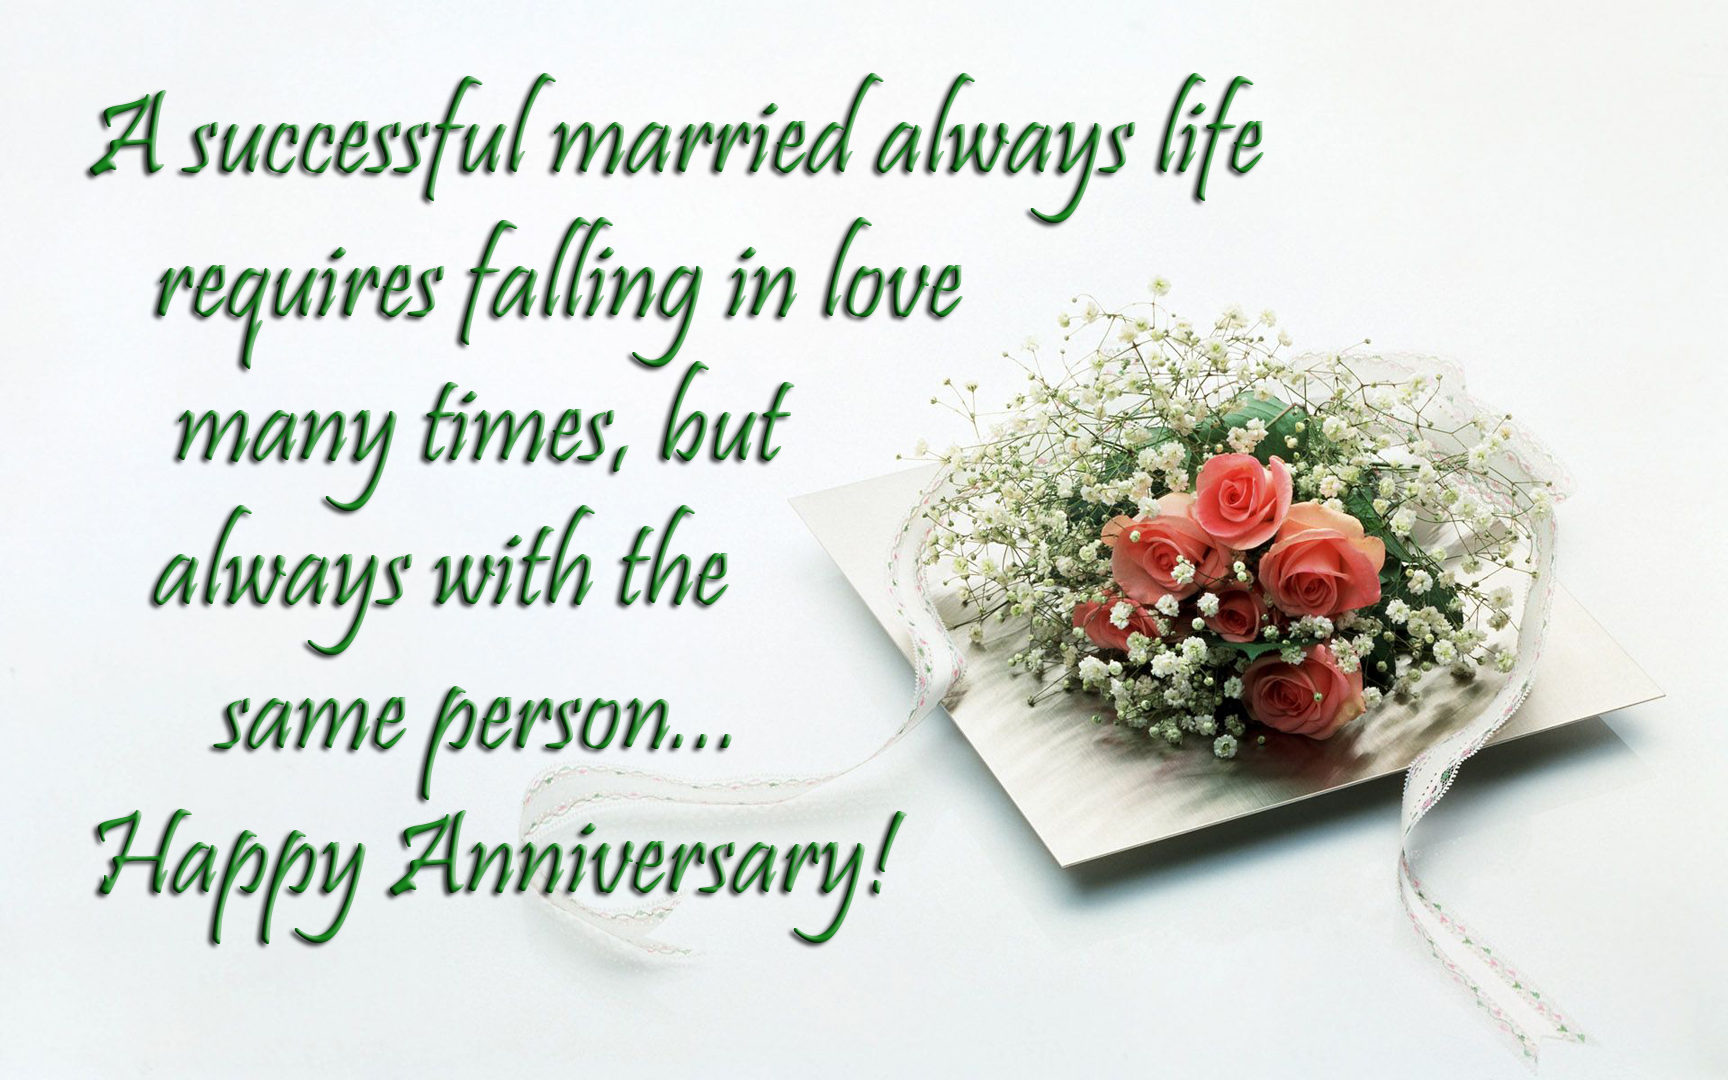 marriage anniversary wishes  messages images